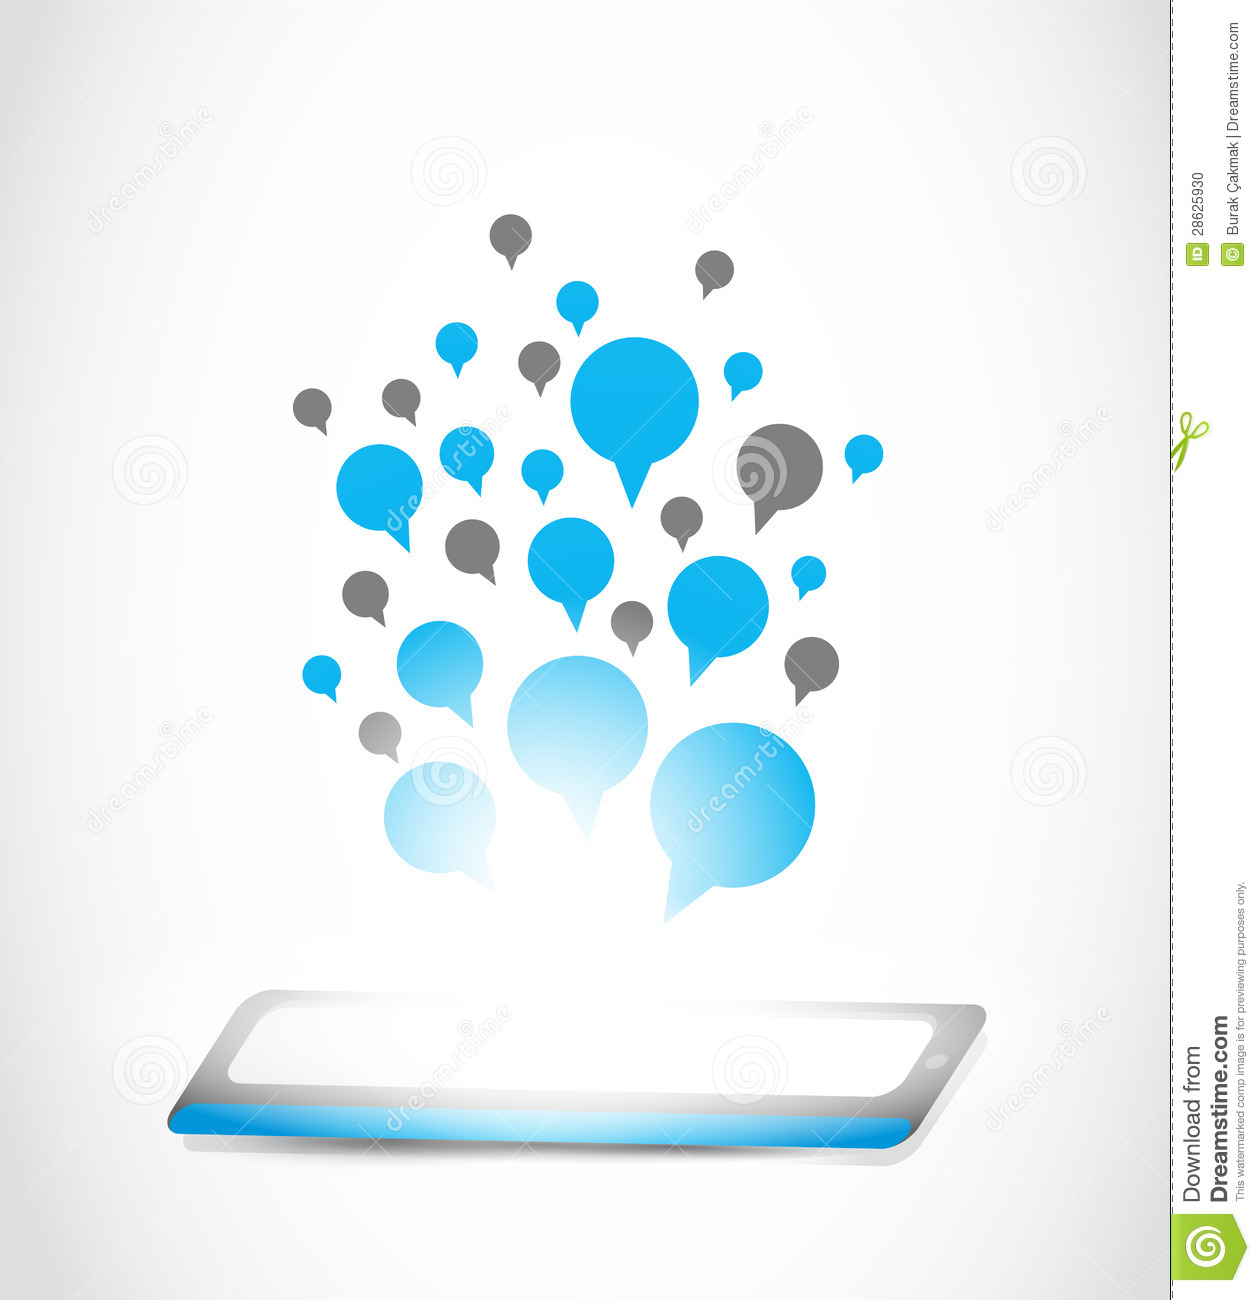 Tablet Computer Communication Technology Stock Photo ...